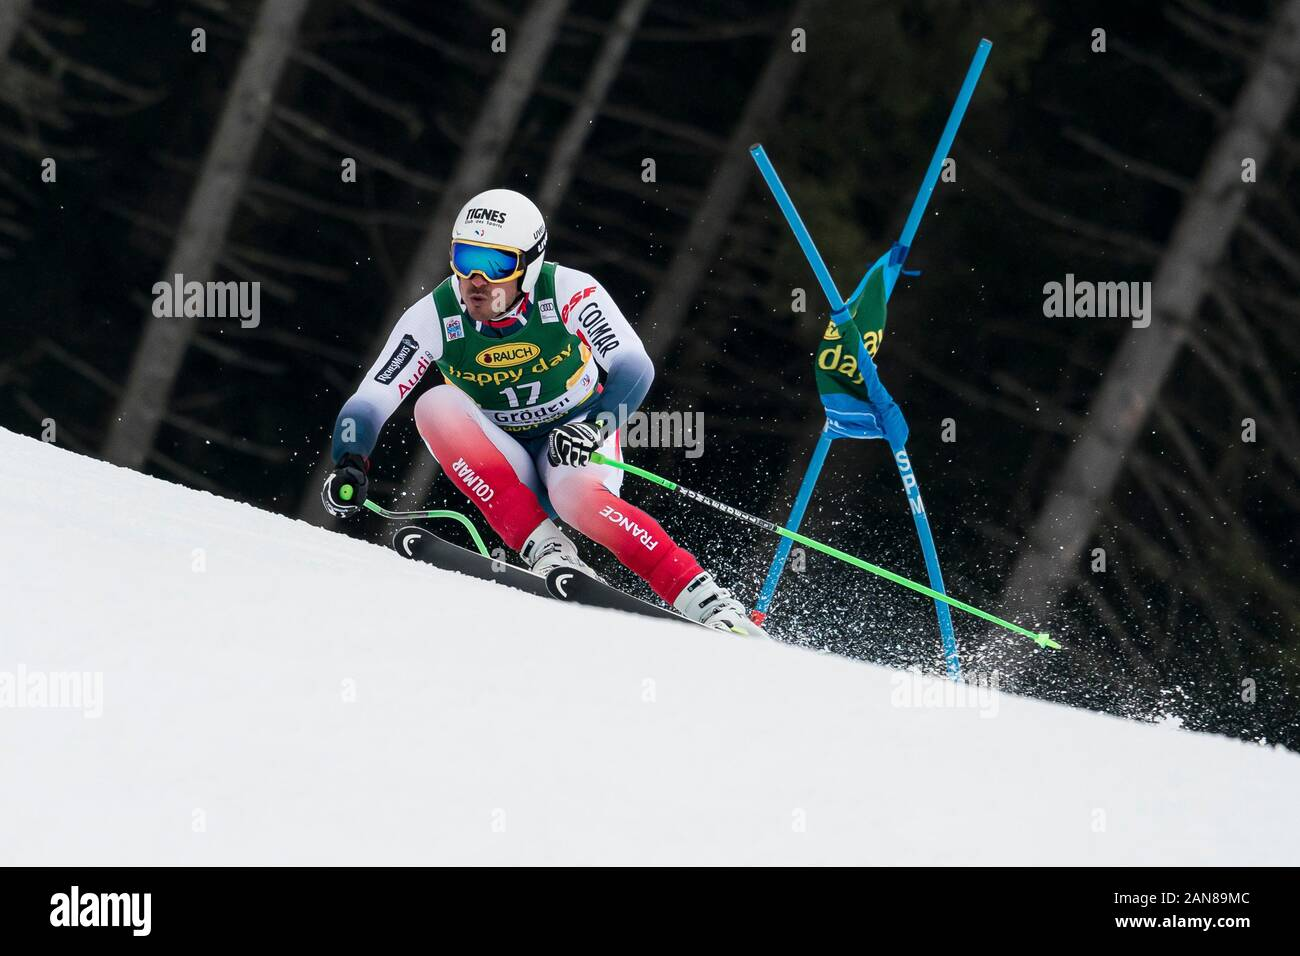 Val Gardena, Italy 20 December 2019. Clarey Johan (Fra) competing in the Audi Fis Alpine Skiing World Cup Men's Super-G Race  on the Saslong Course in Stock Photo